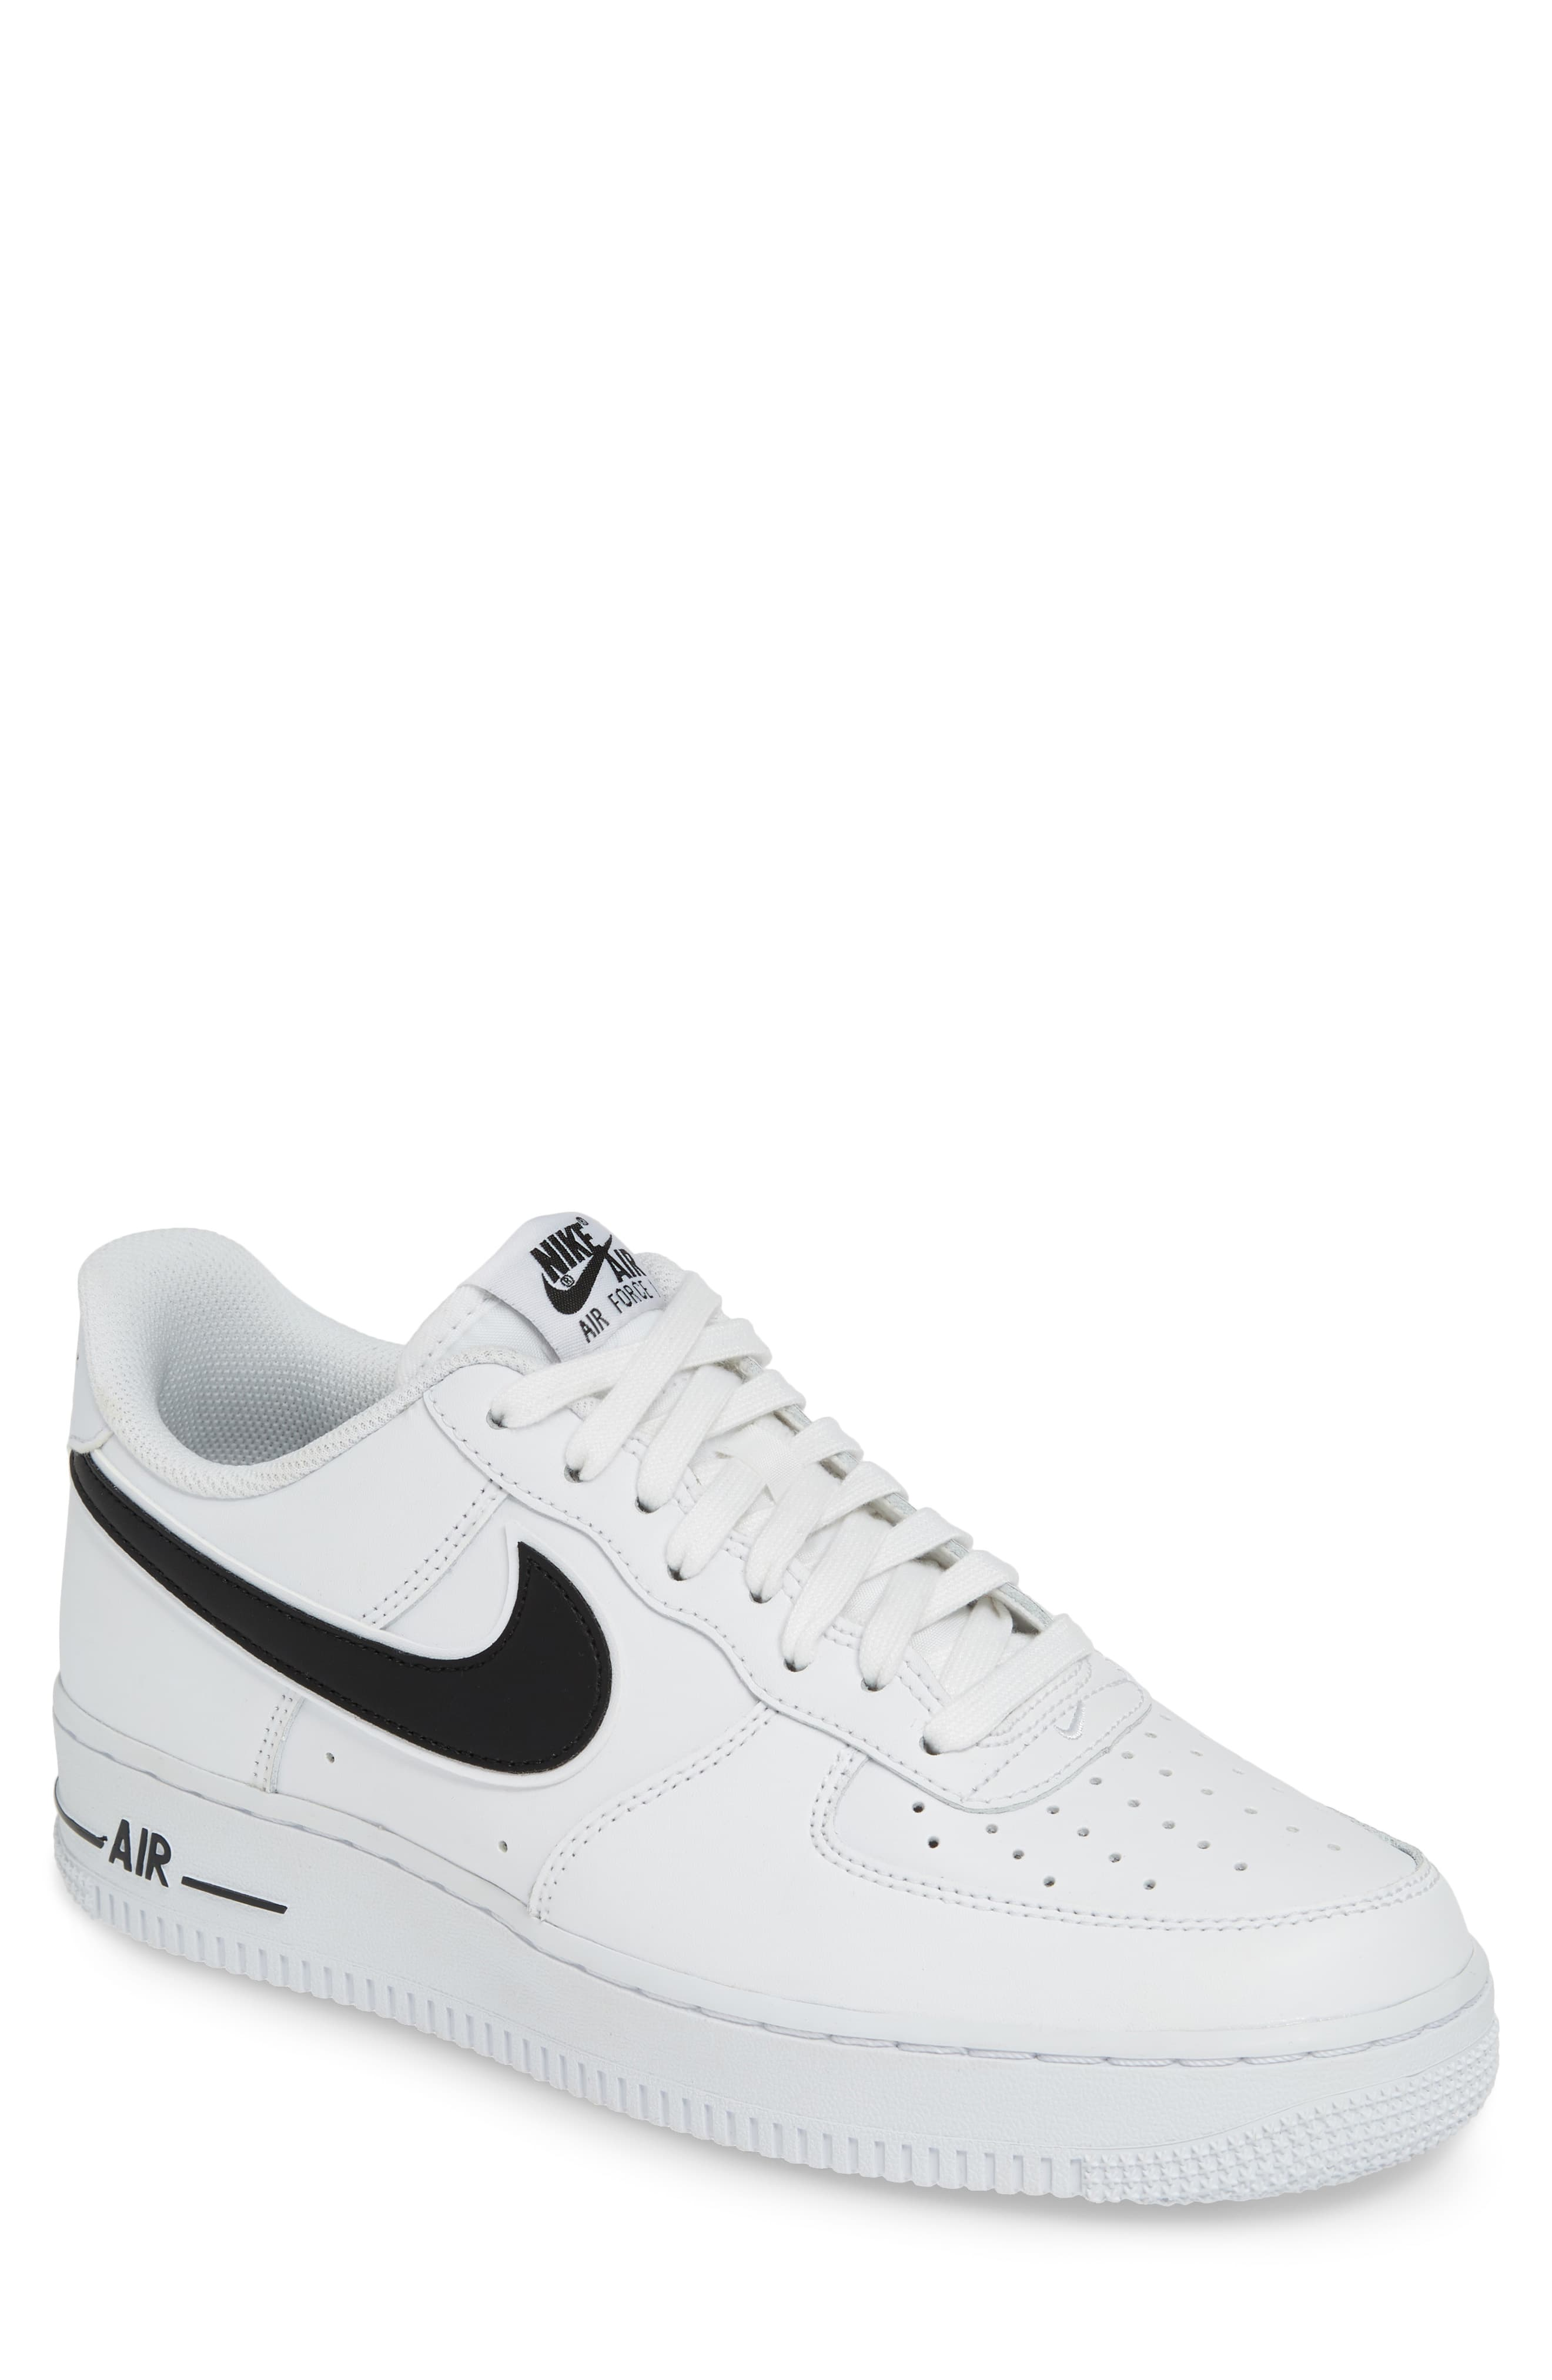 white air force 1 size 3